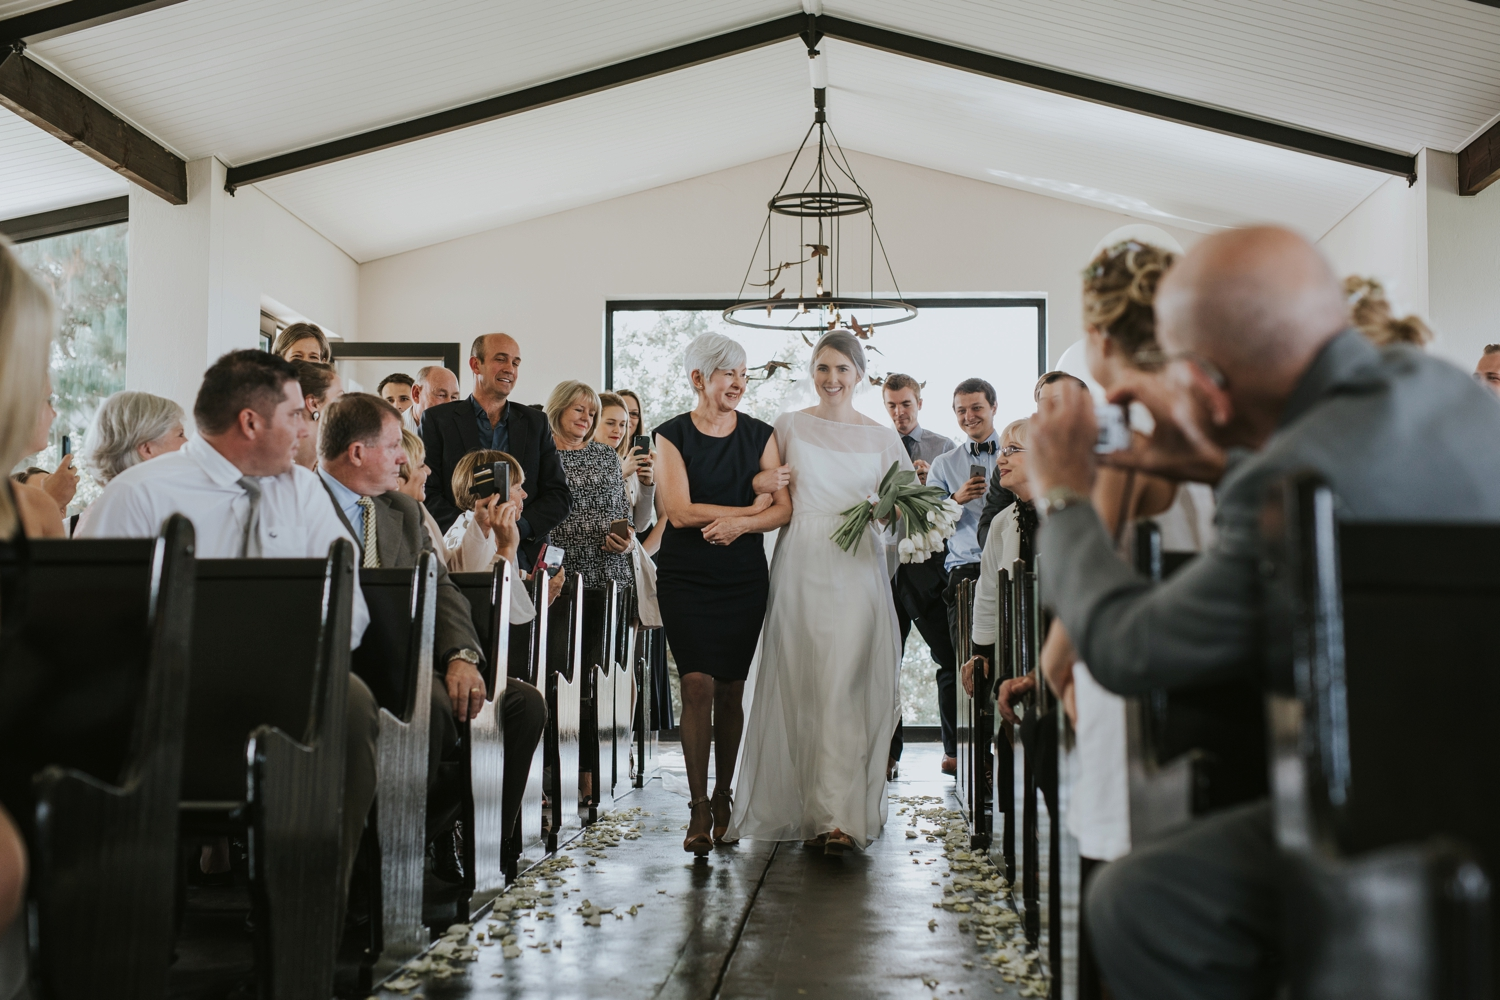 Candid and beautiful wedding moment of mother walking her daughter, the bride, down the aisle at Netherwood Wedding Venue in the Natal Midlands